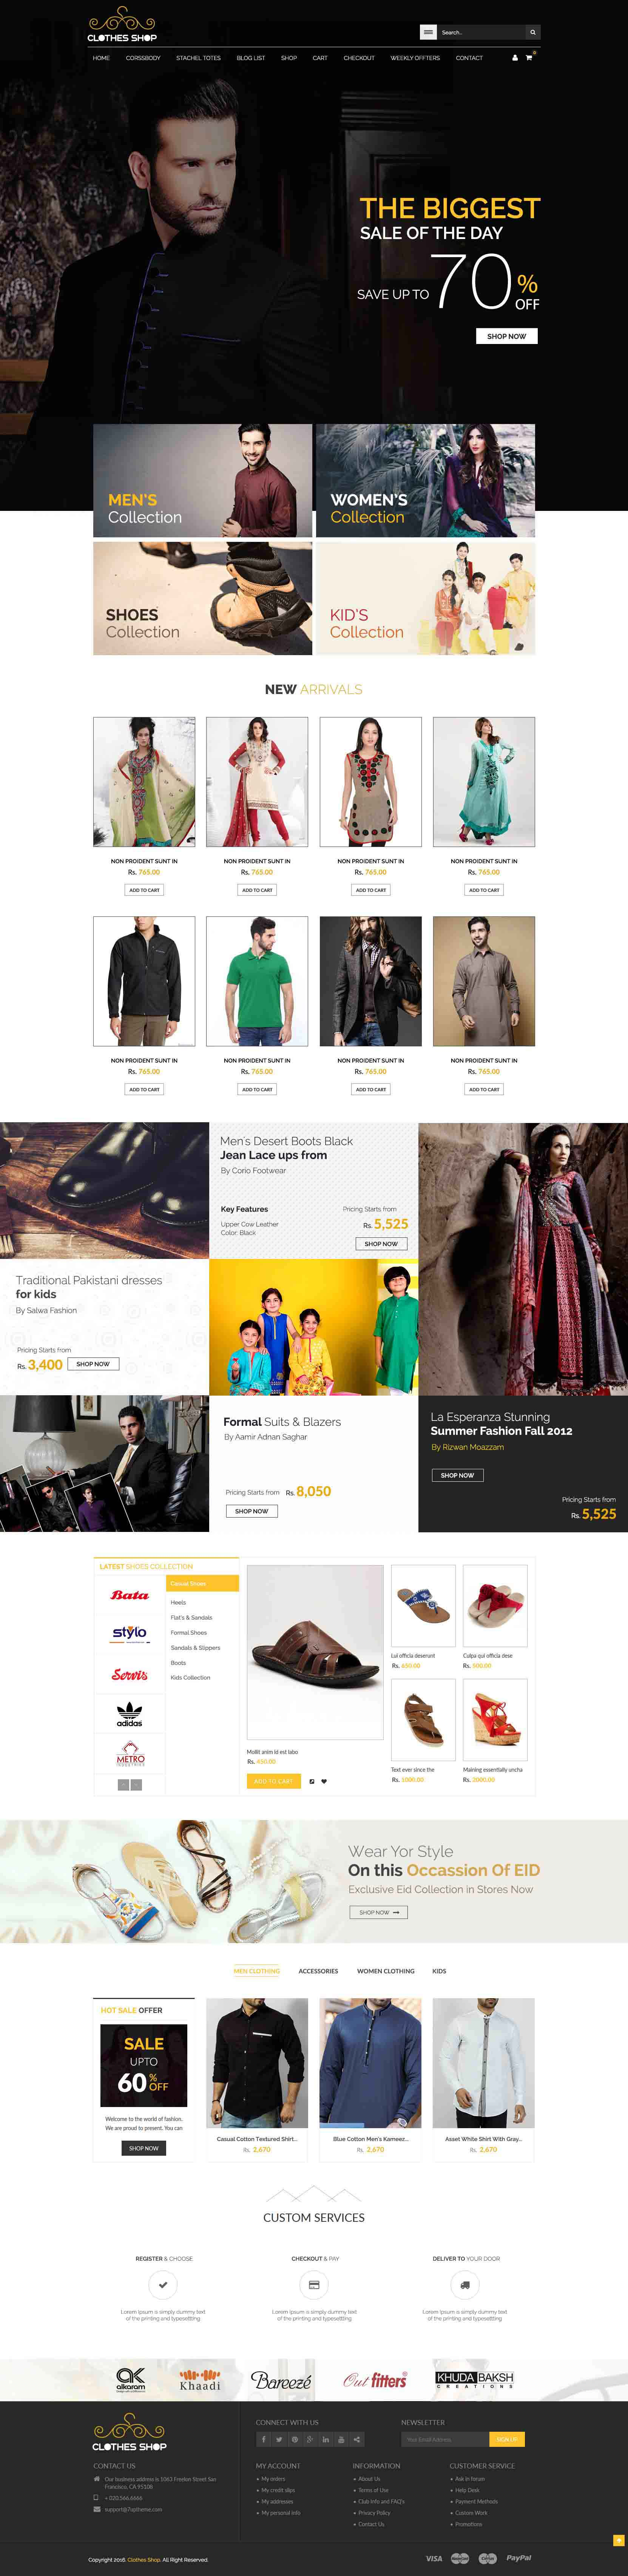 incipit solutions ecommerce shopping website design